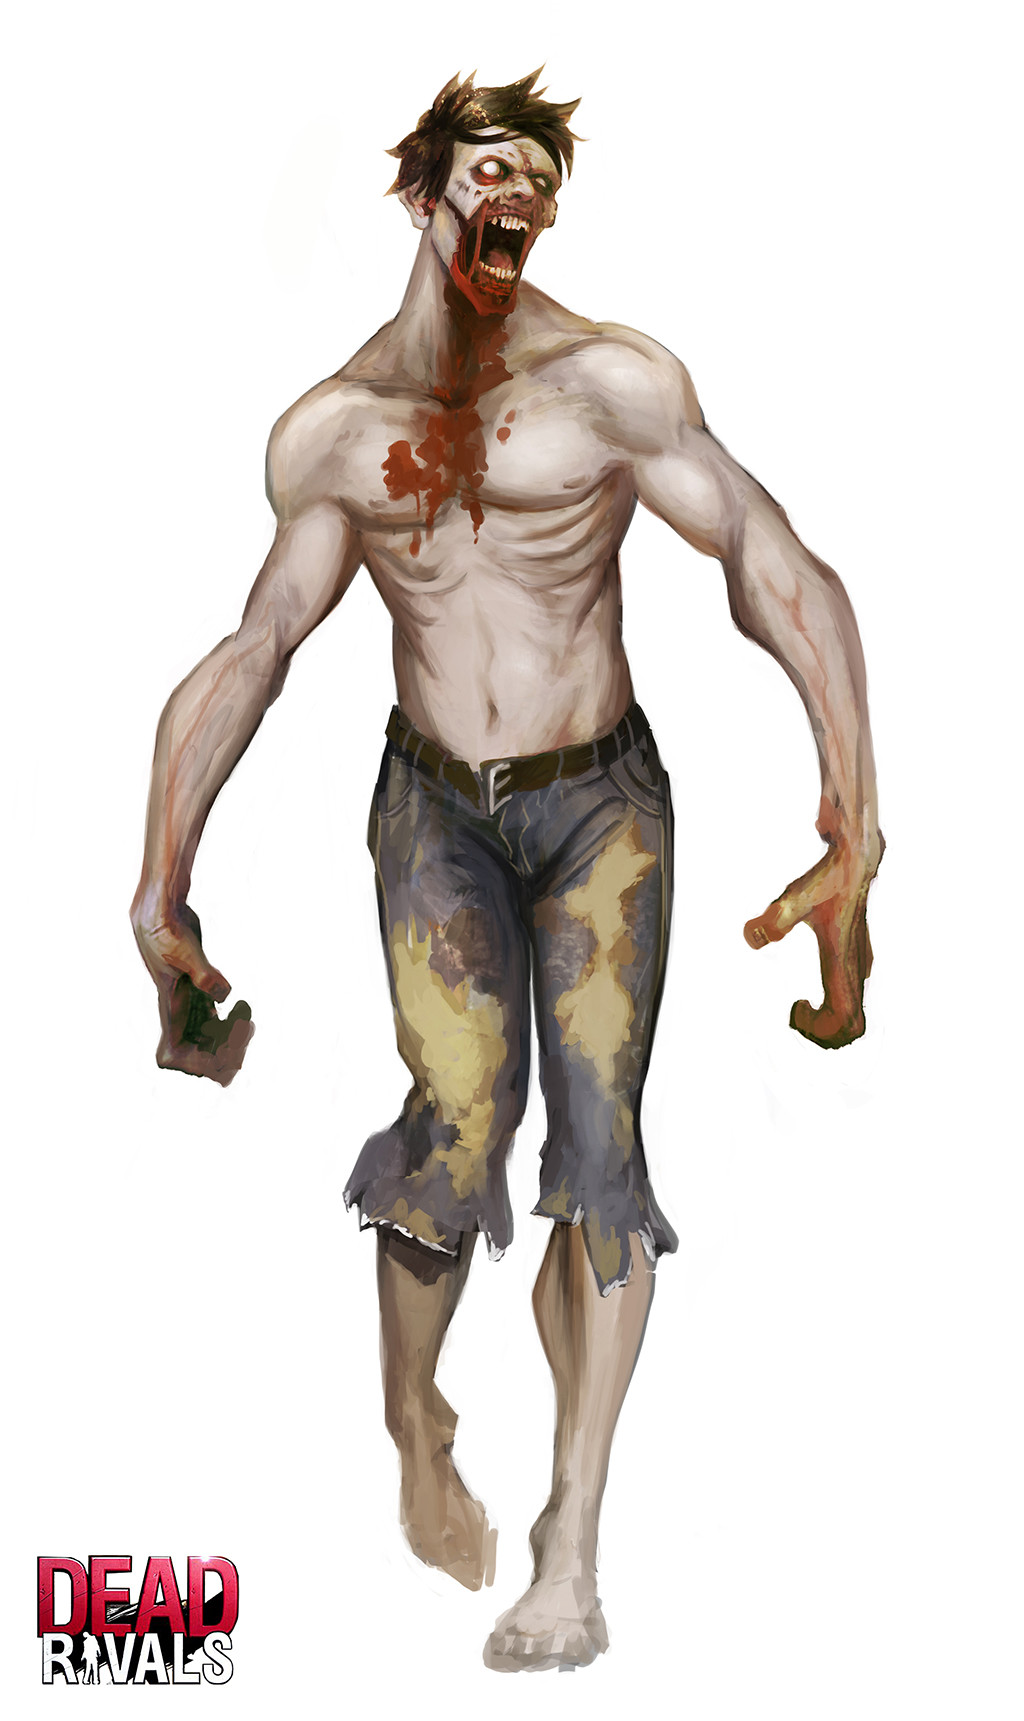 Alexandre chaudret zombiemmo character zombie redesign03